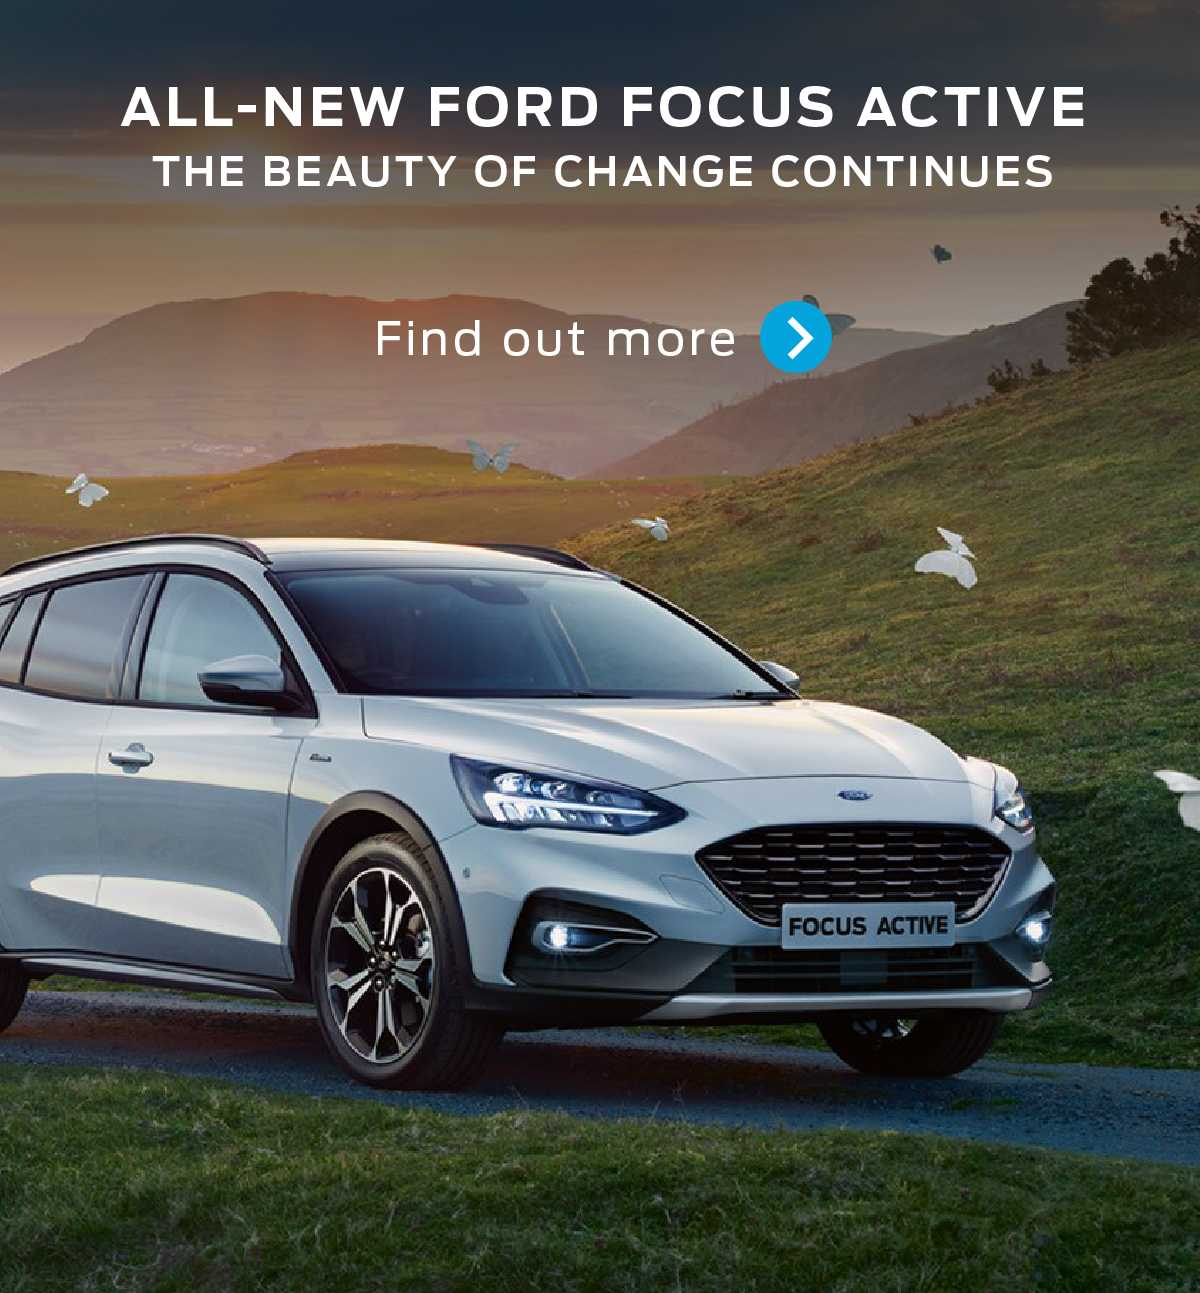 All-New Ford Focus Active Banner 3